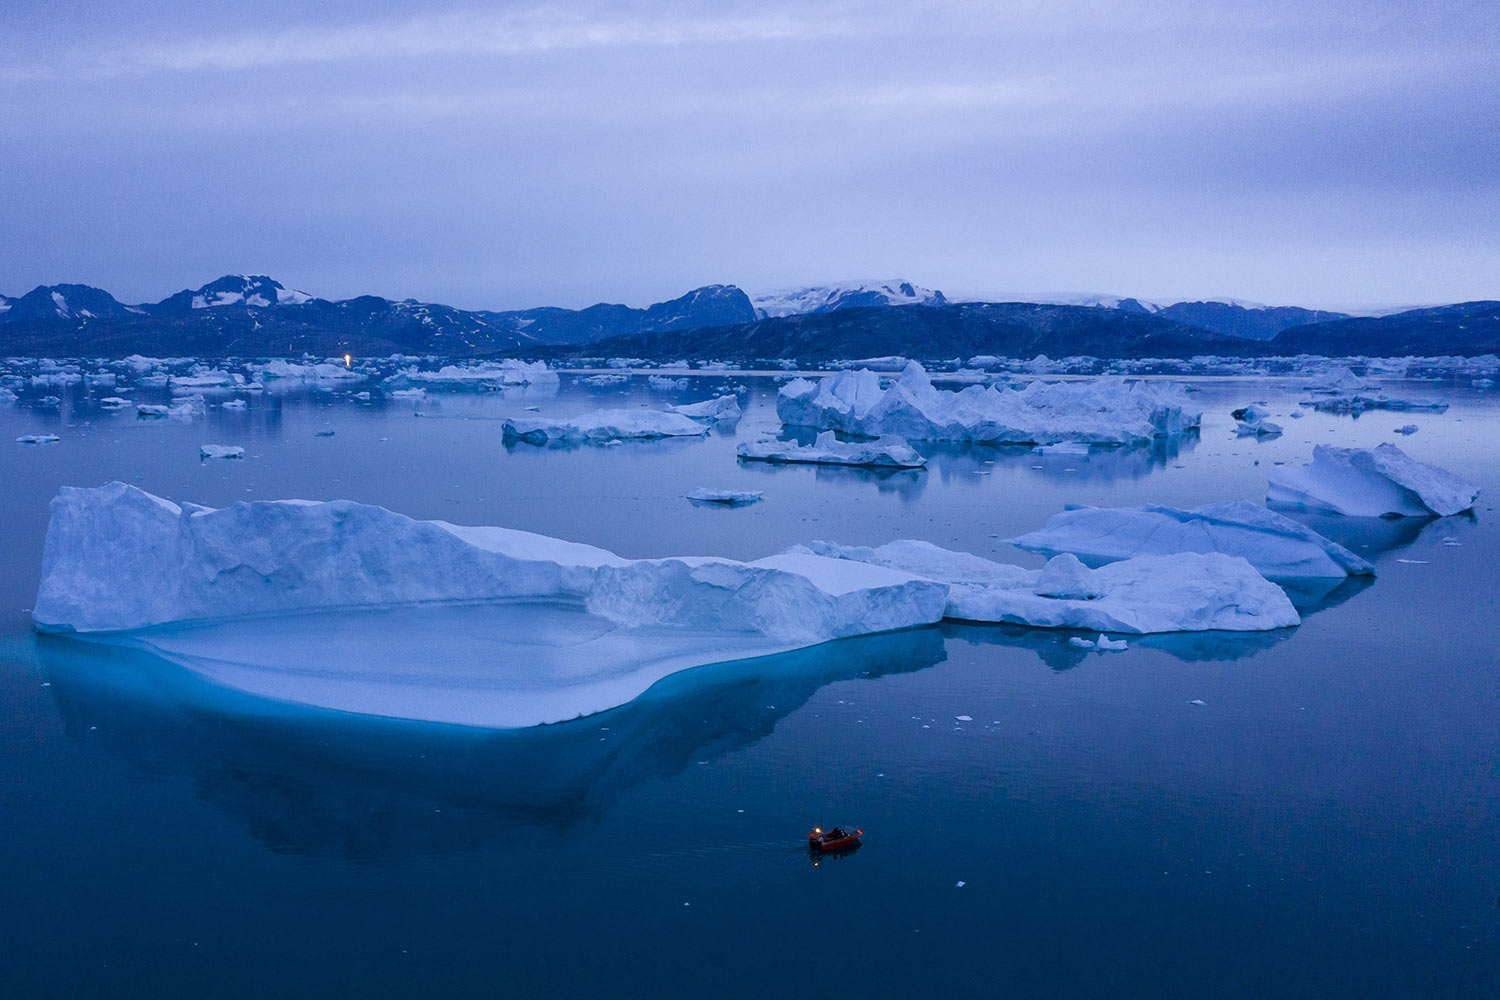 A boat navigates at night next to large icebergs near the town of Kulusuk, on Aug. 15, 2019, in eastern Greenland. Greenland's ice has been melting for more than 20 years, but in 2019, it's as if Earth's refrigerator door has been left open, and it means a potentially large rise in the world's sea levels. (AP Photo/Felipe Dana)